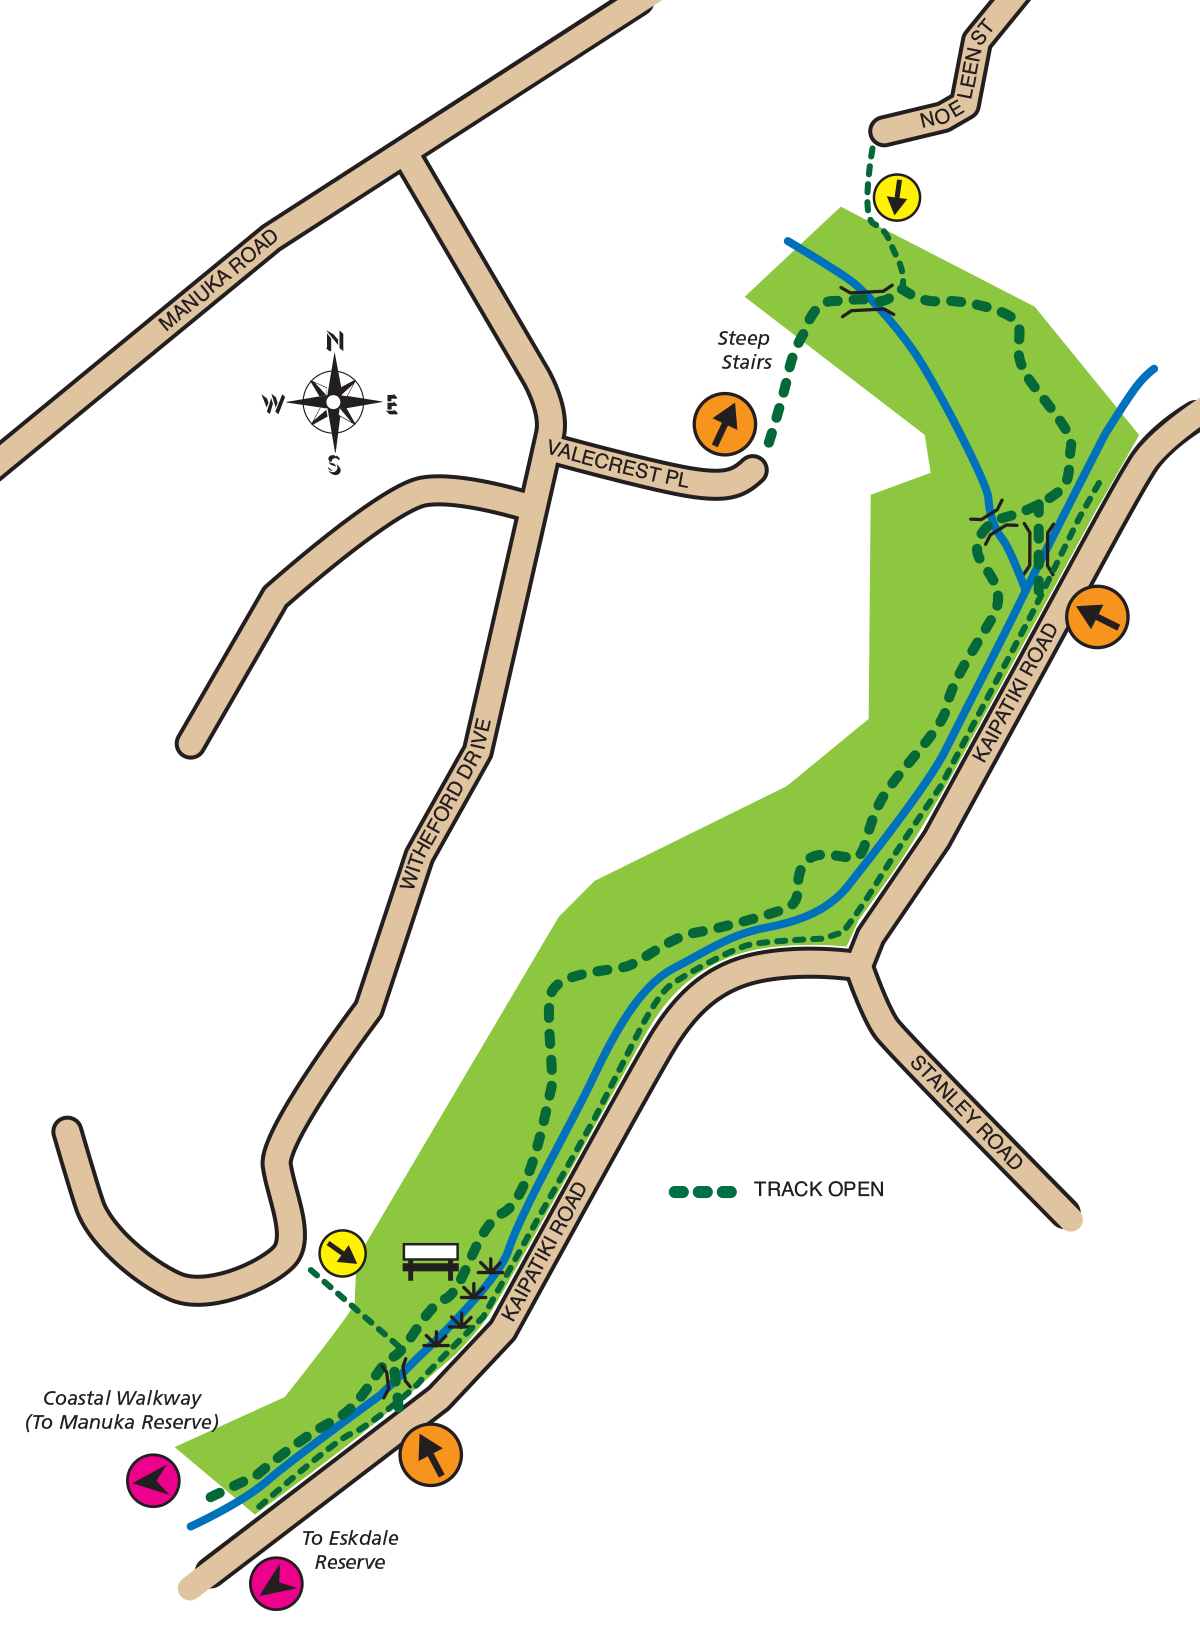 Witheford reserve_map